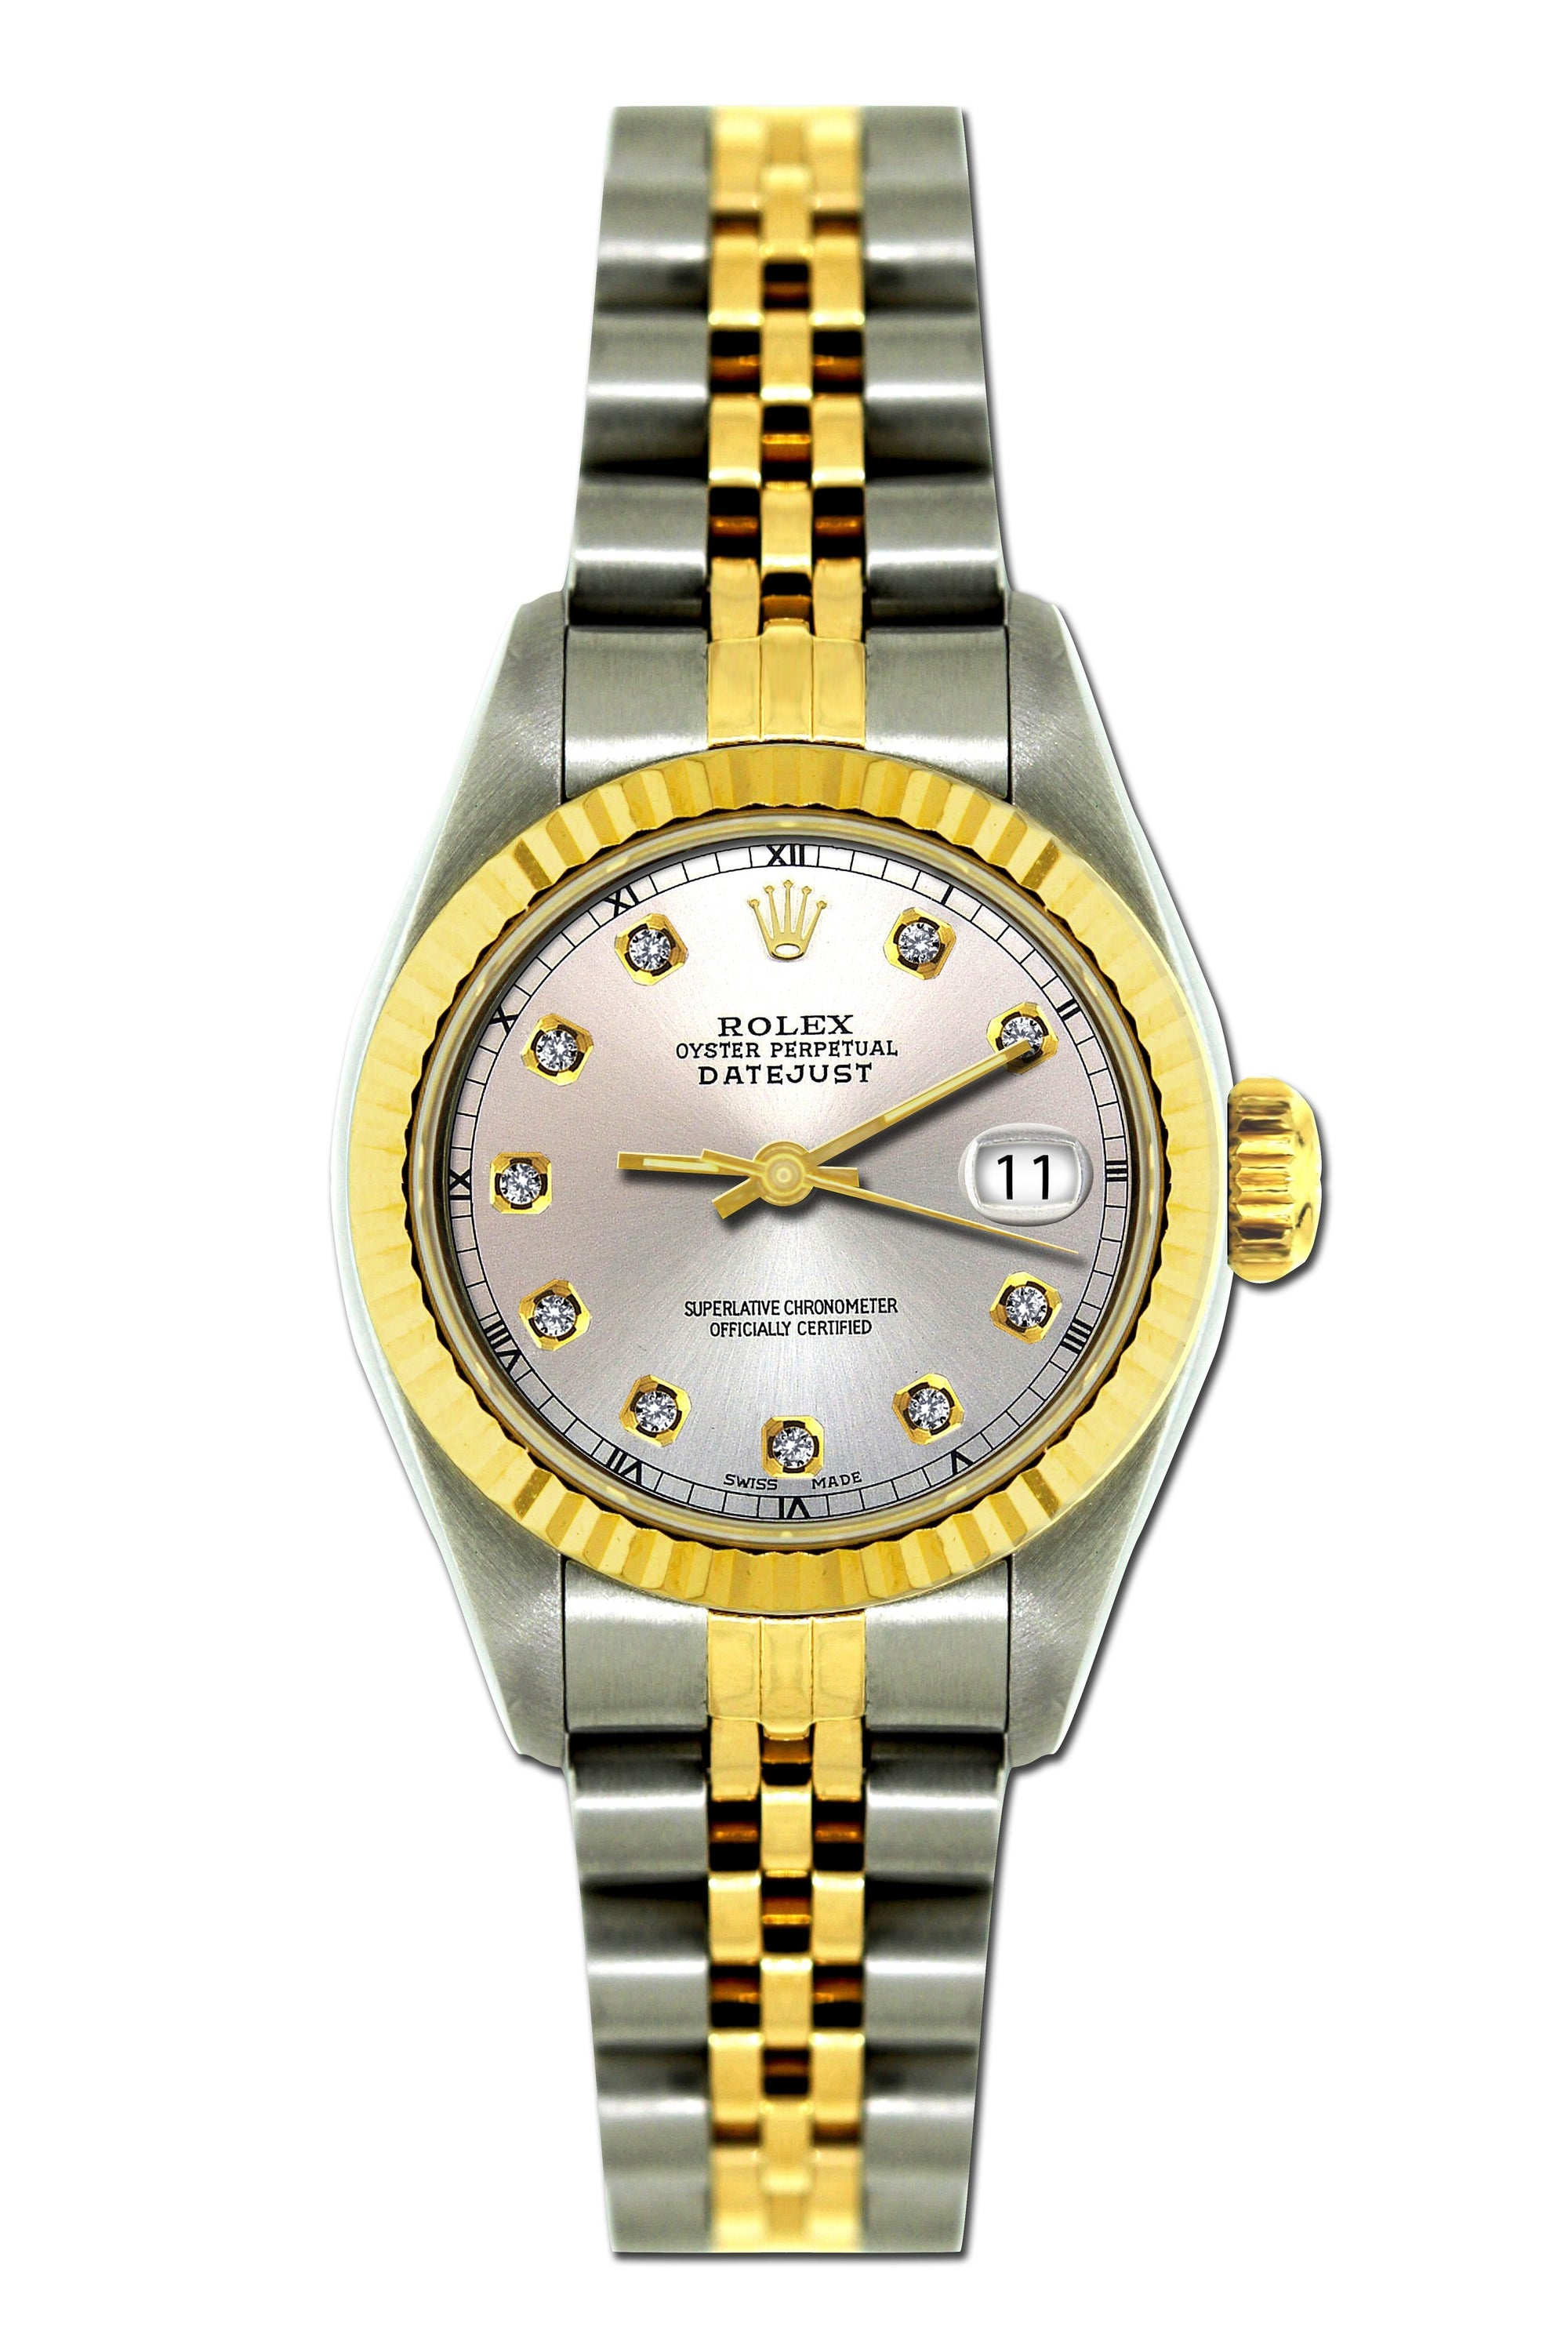 Rolex Datejust 26mm Yellow Gold and Stainless Steel Bracelet Cloudy Dial